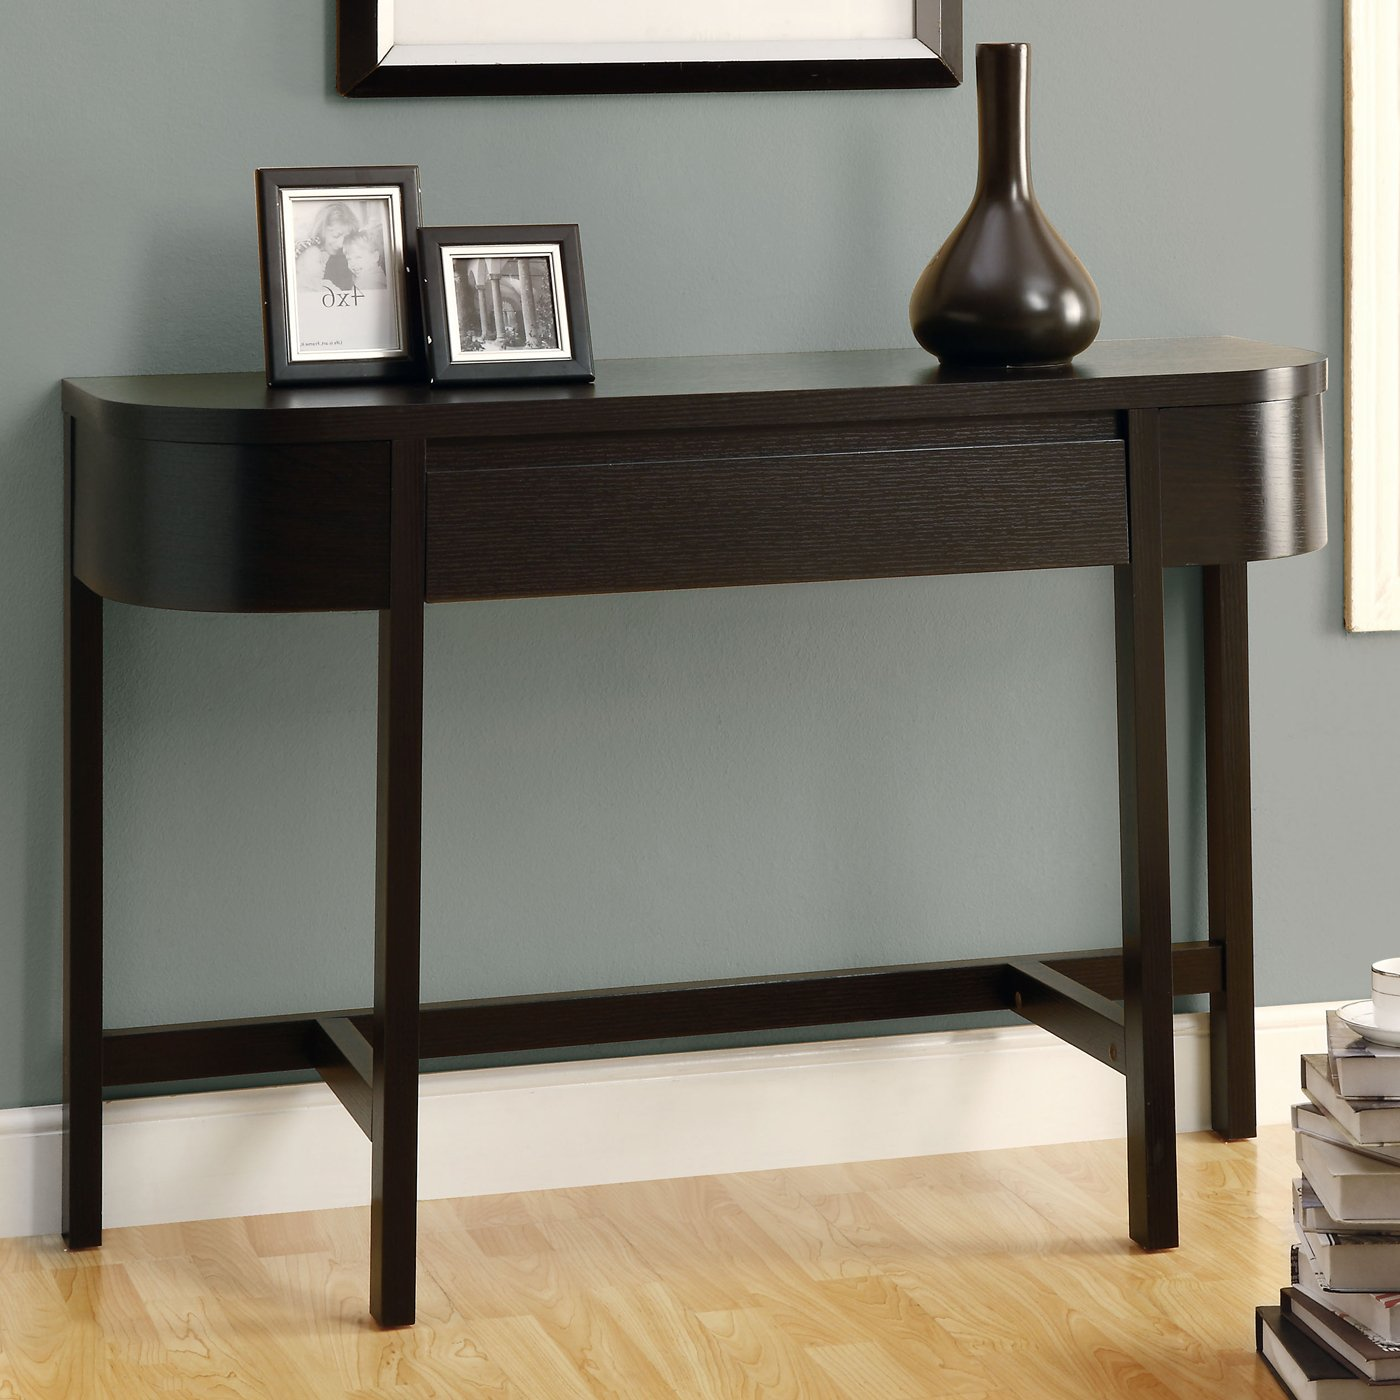 furniture contemporary narrow console table for entryway accent brown espresso wooden decorative urn jar black timber frame gray paint wall oak laminate flooring ideas with